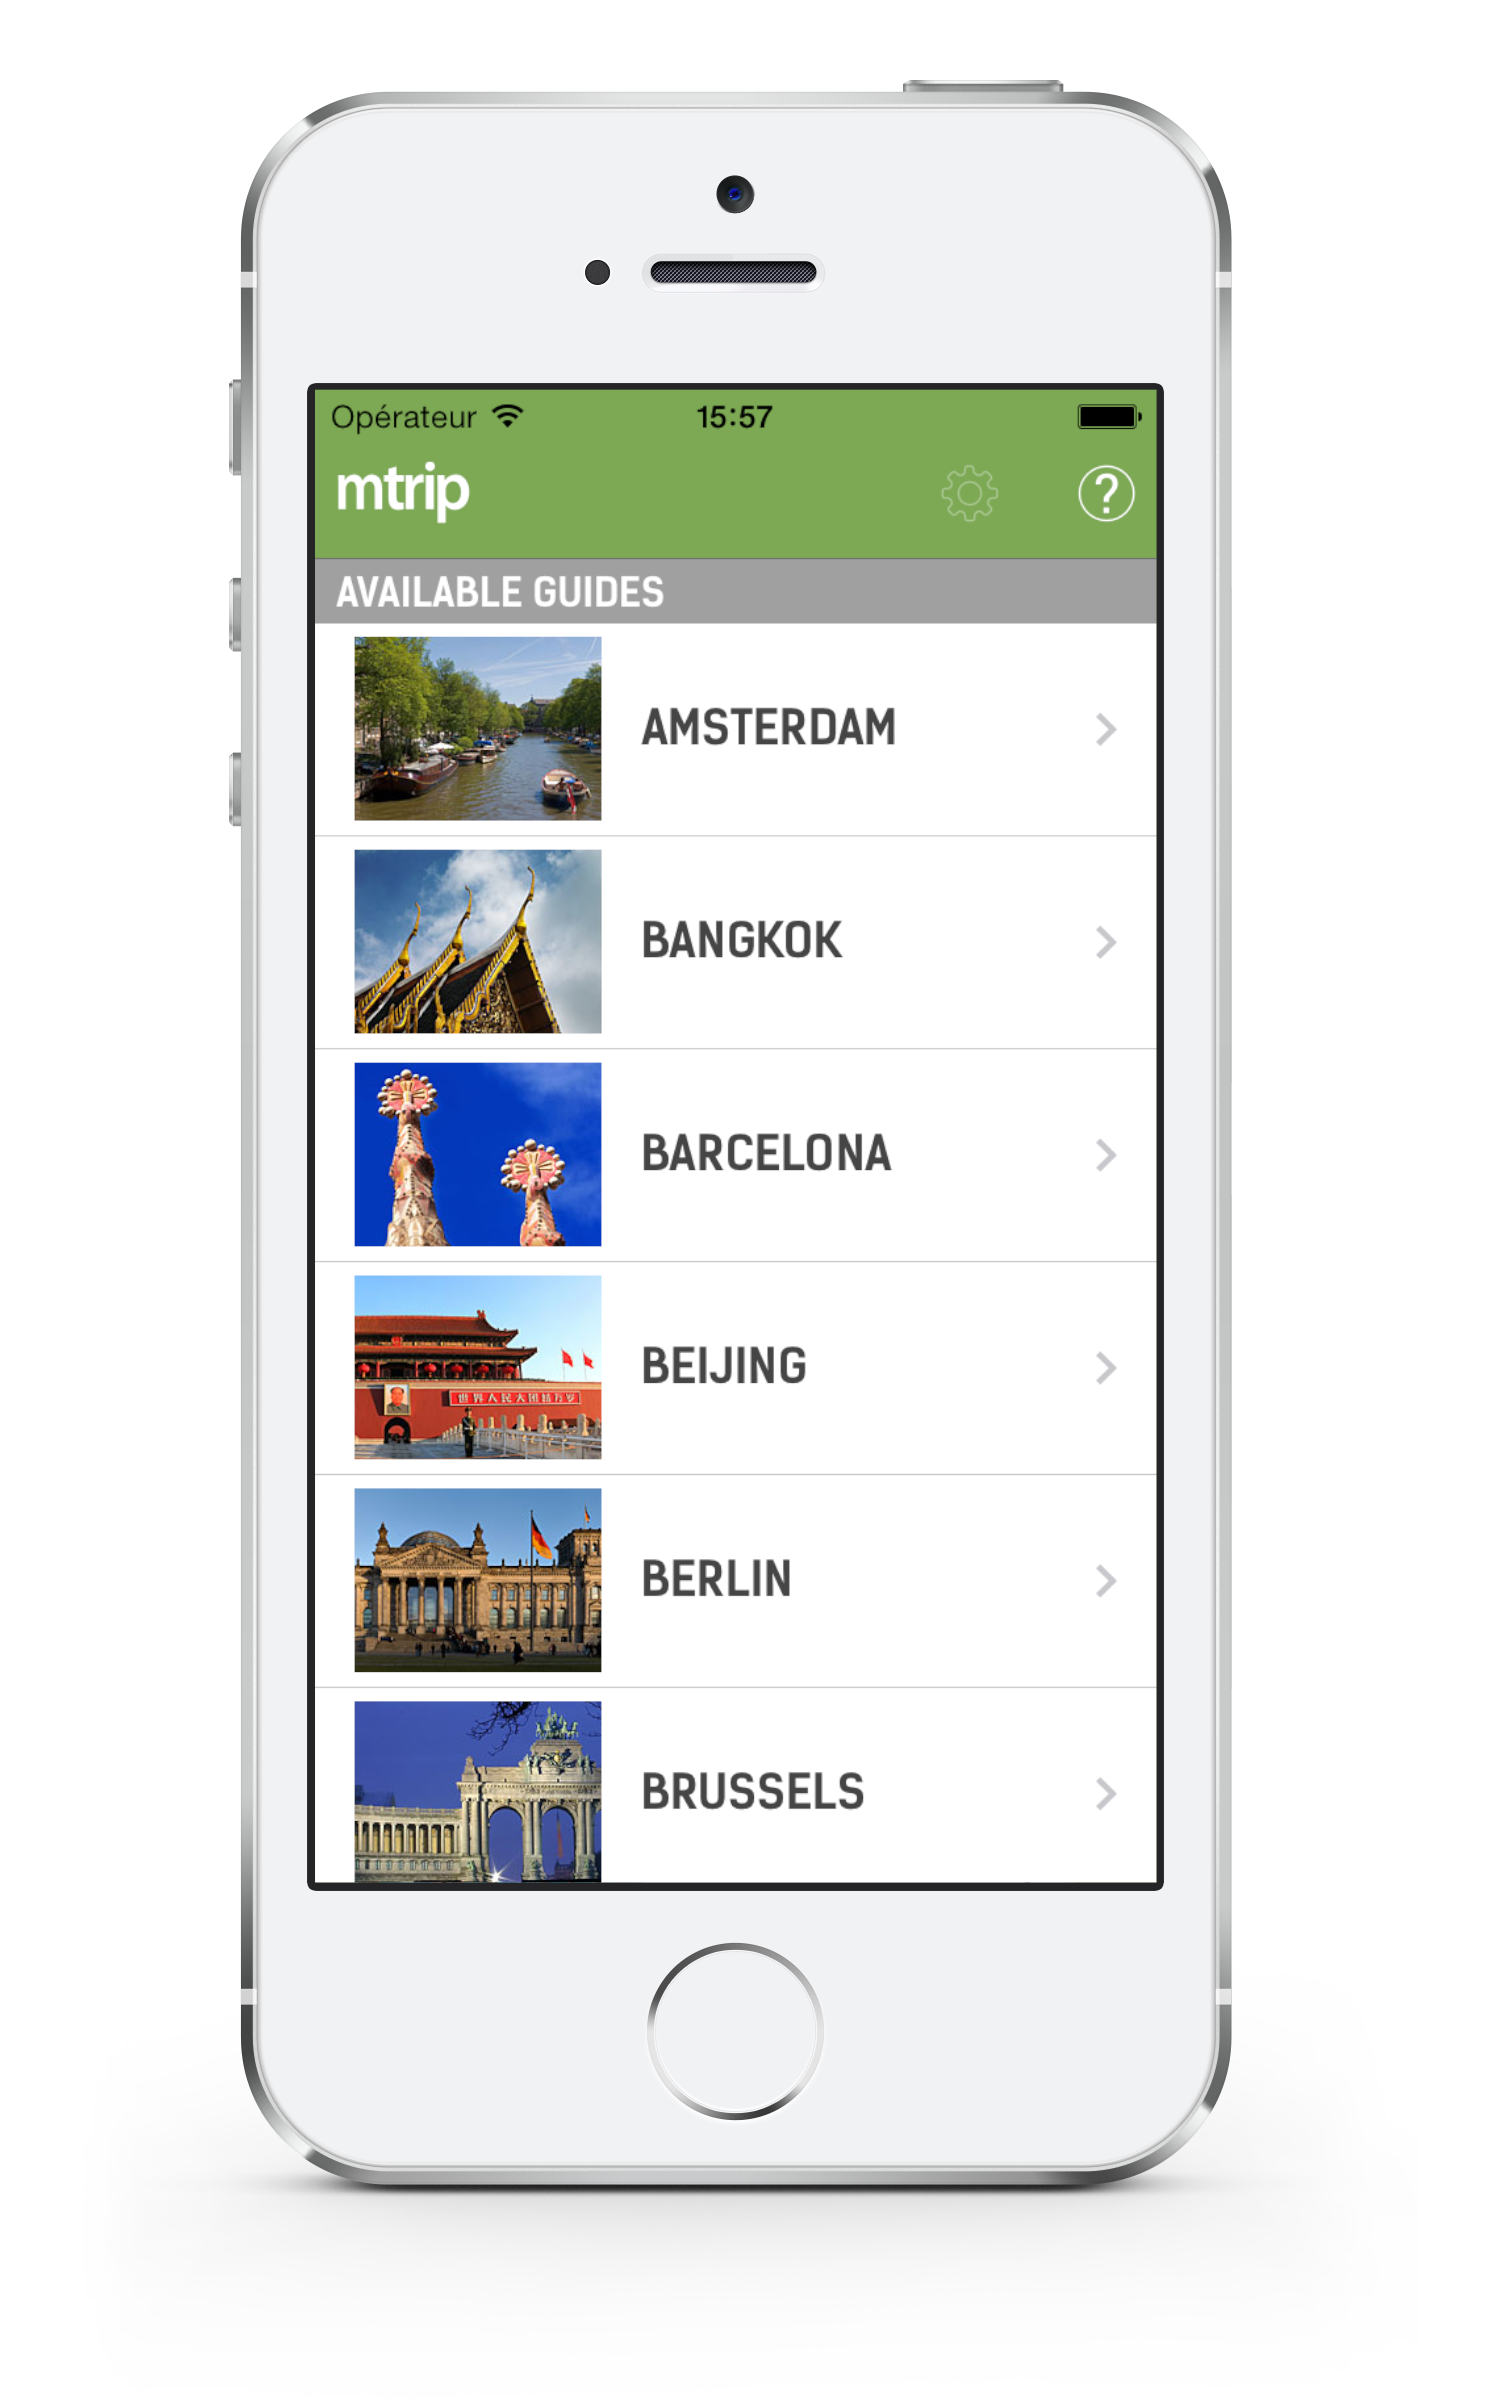 mTrip main screen